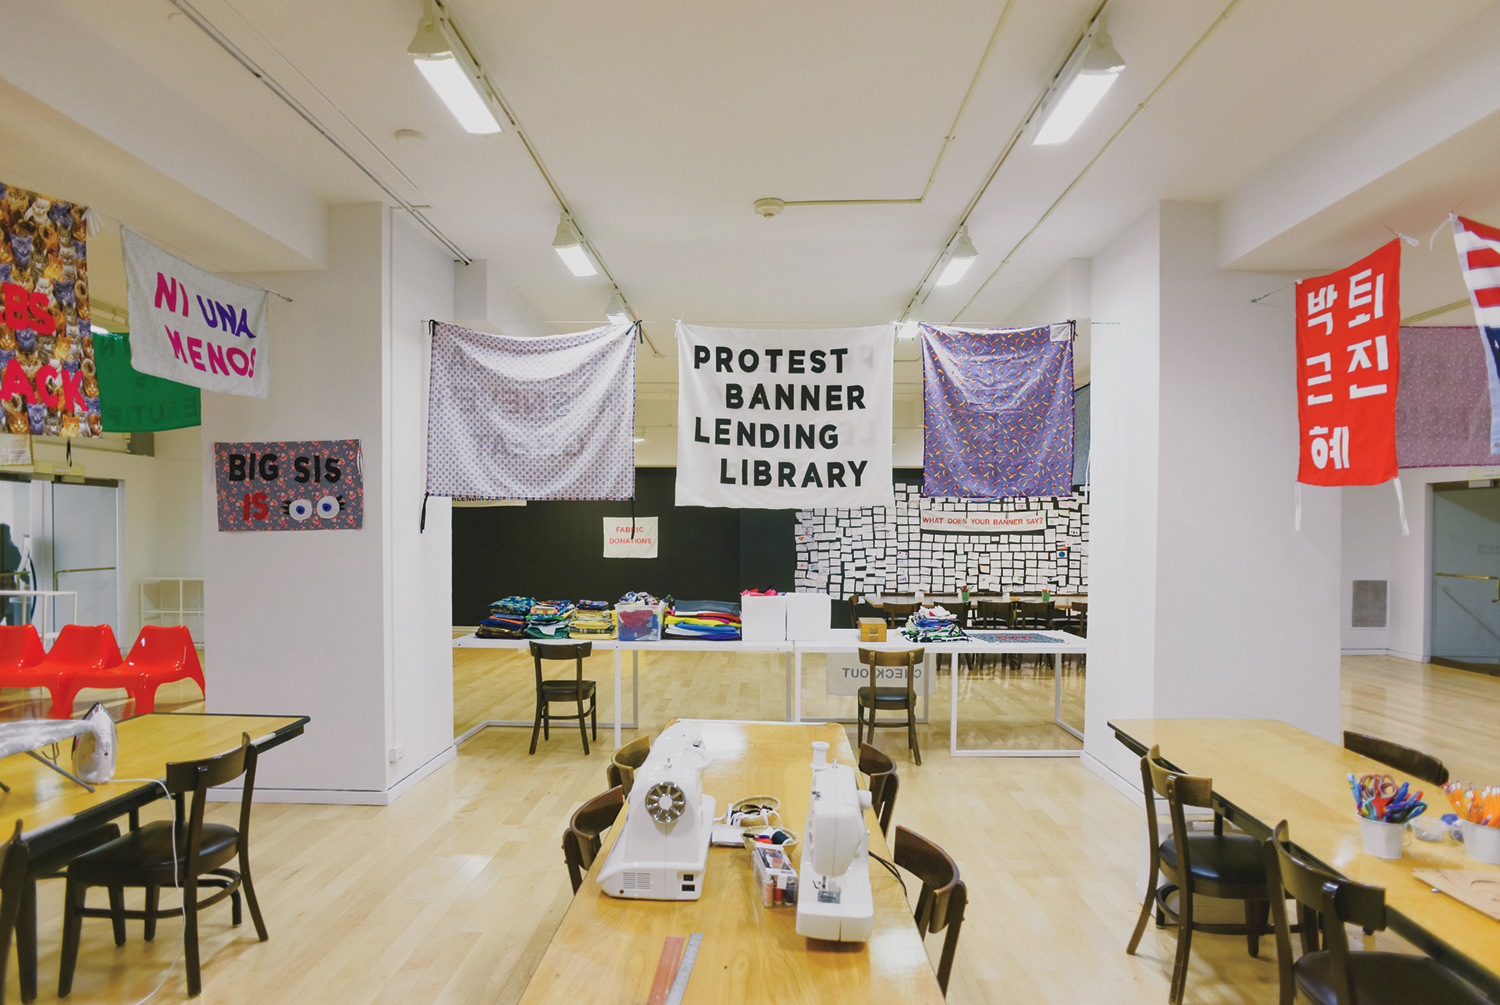 Aram Han Sifuentes To Make Protest Banners At Expo Chicago School